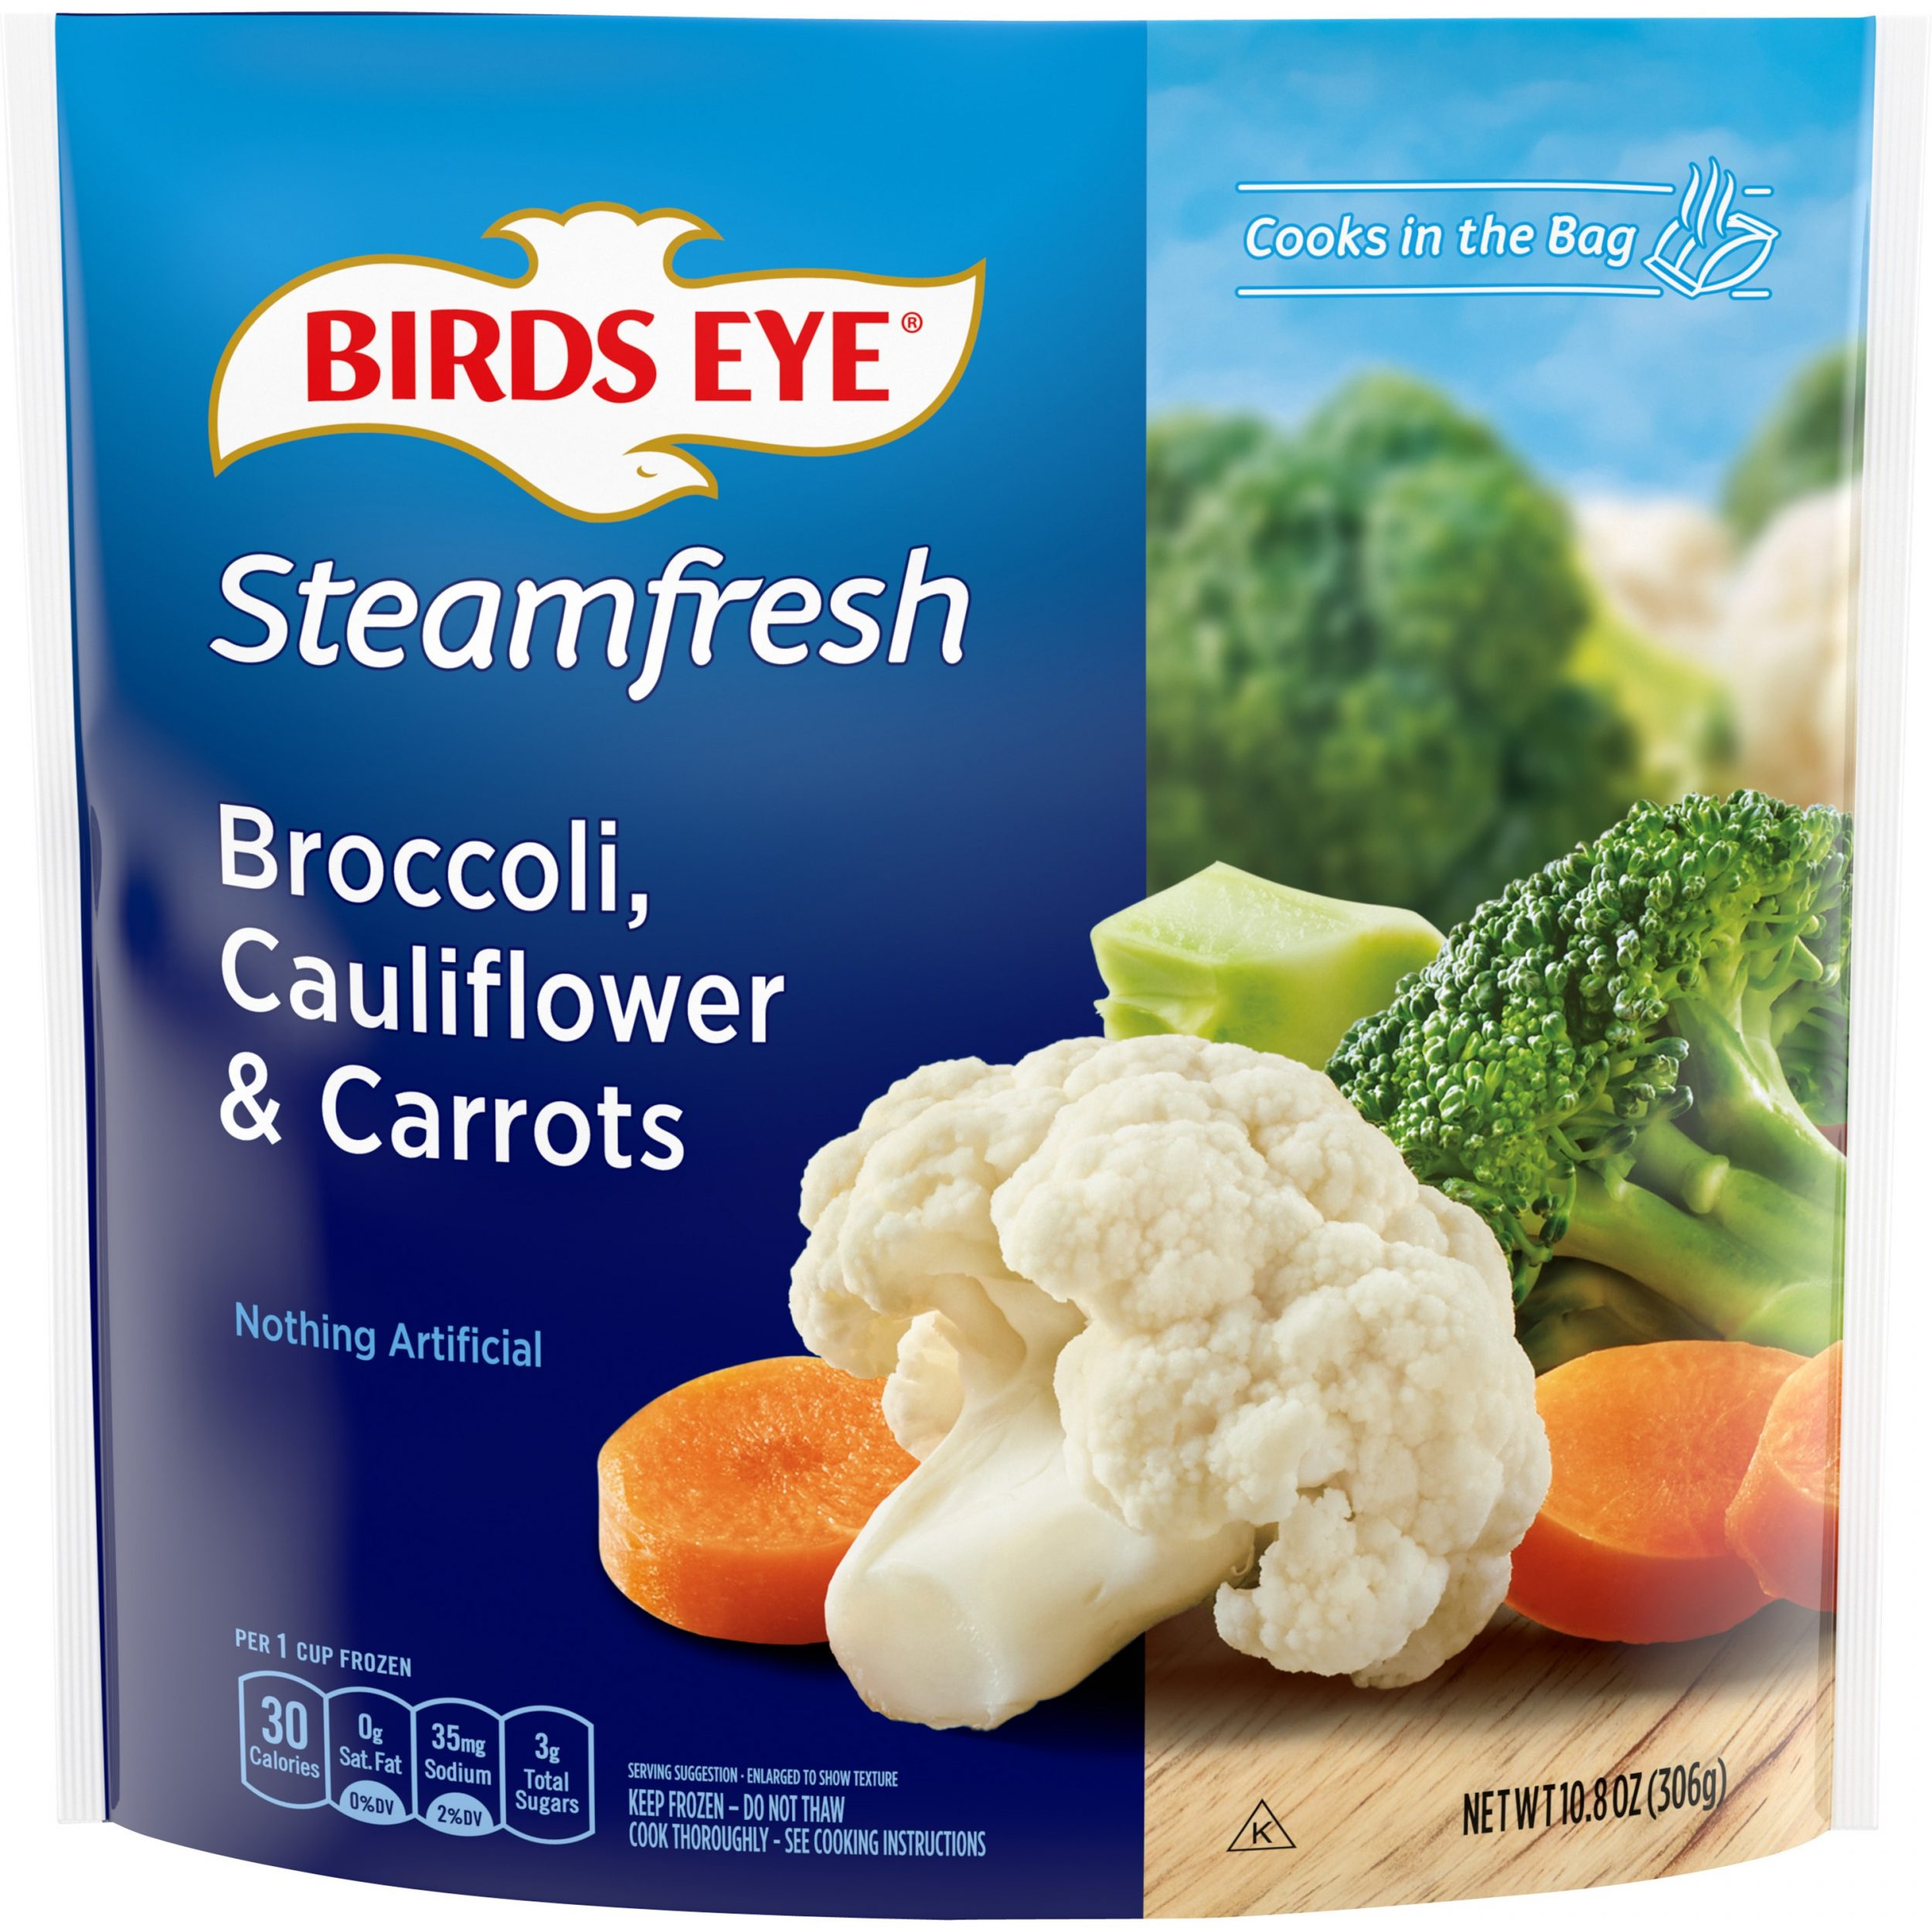 Birds Eye Steamfresh Mixtures Broccoli, Cauliflower & Carrots